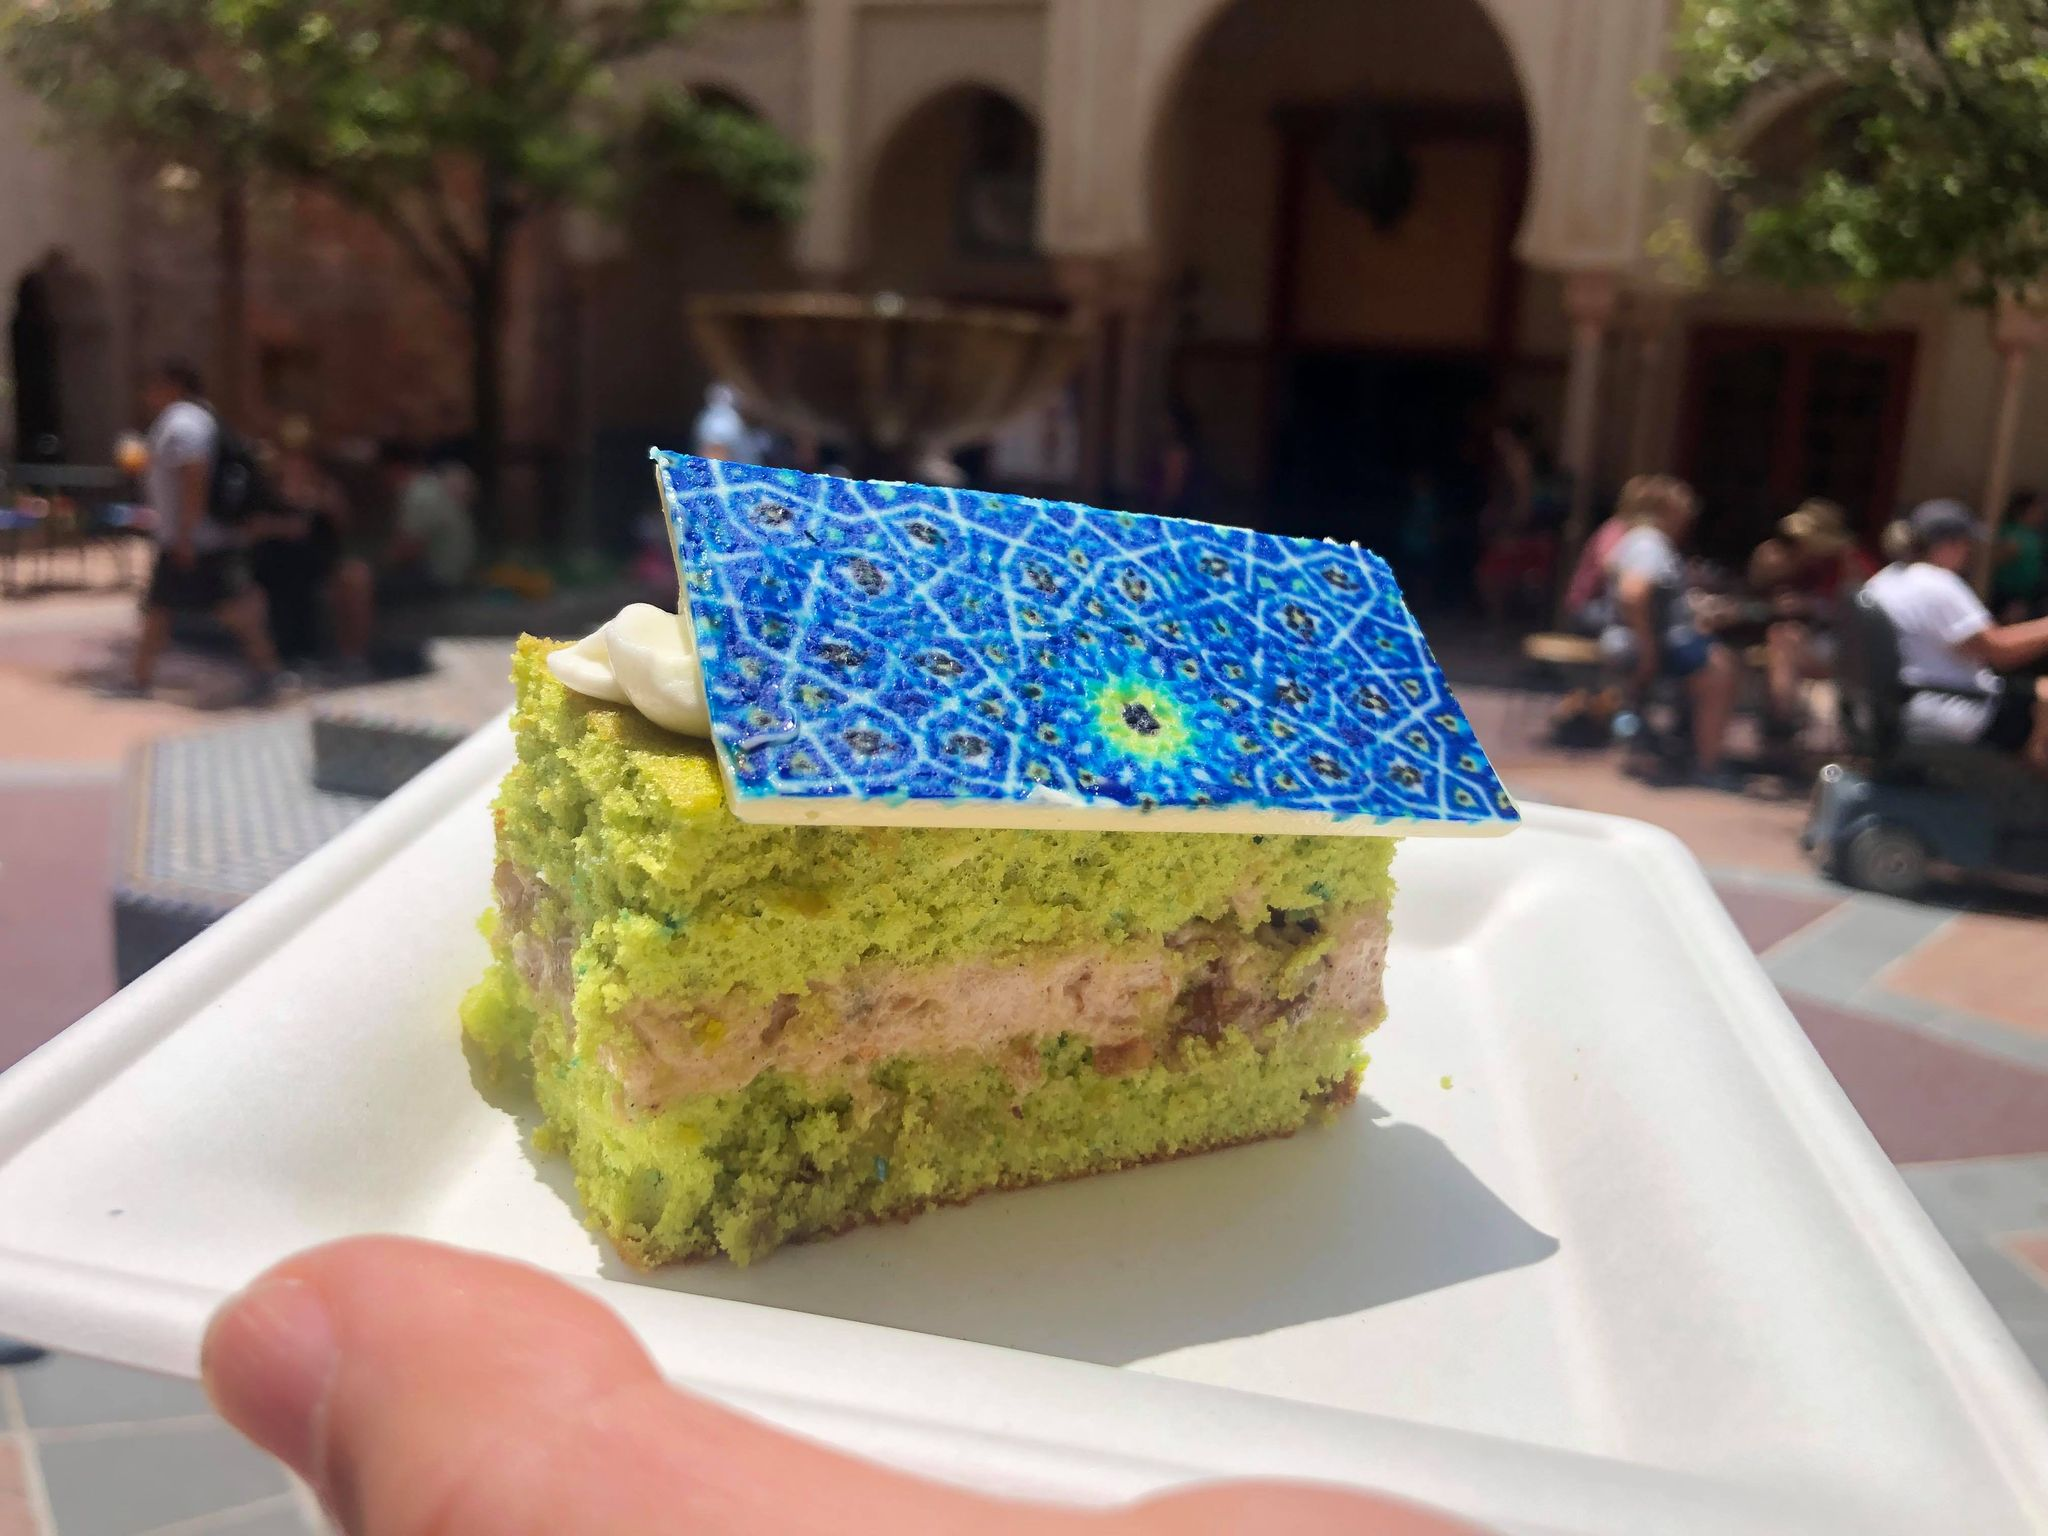 Tangierine Café: Flavors of the Medina Opens for Epcot Food & Wine Festival 8